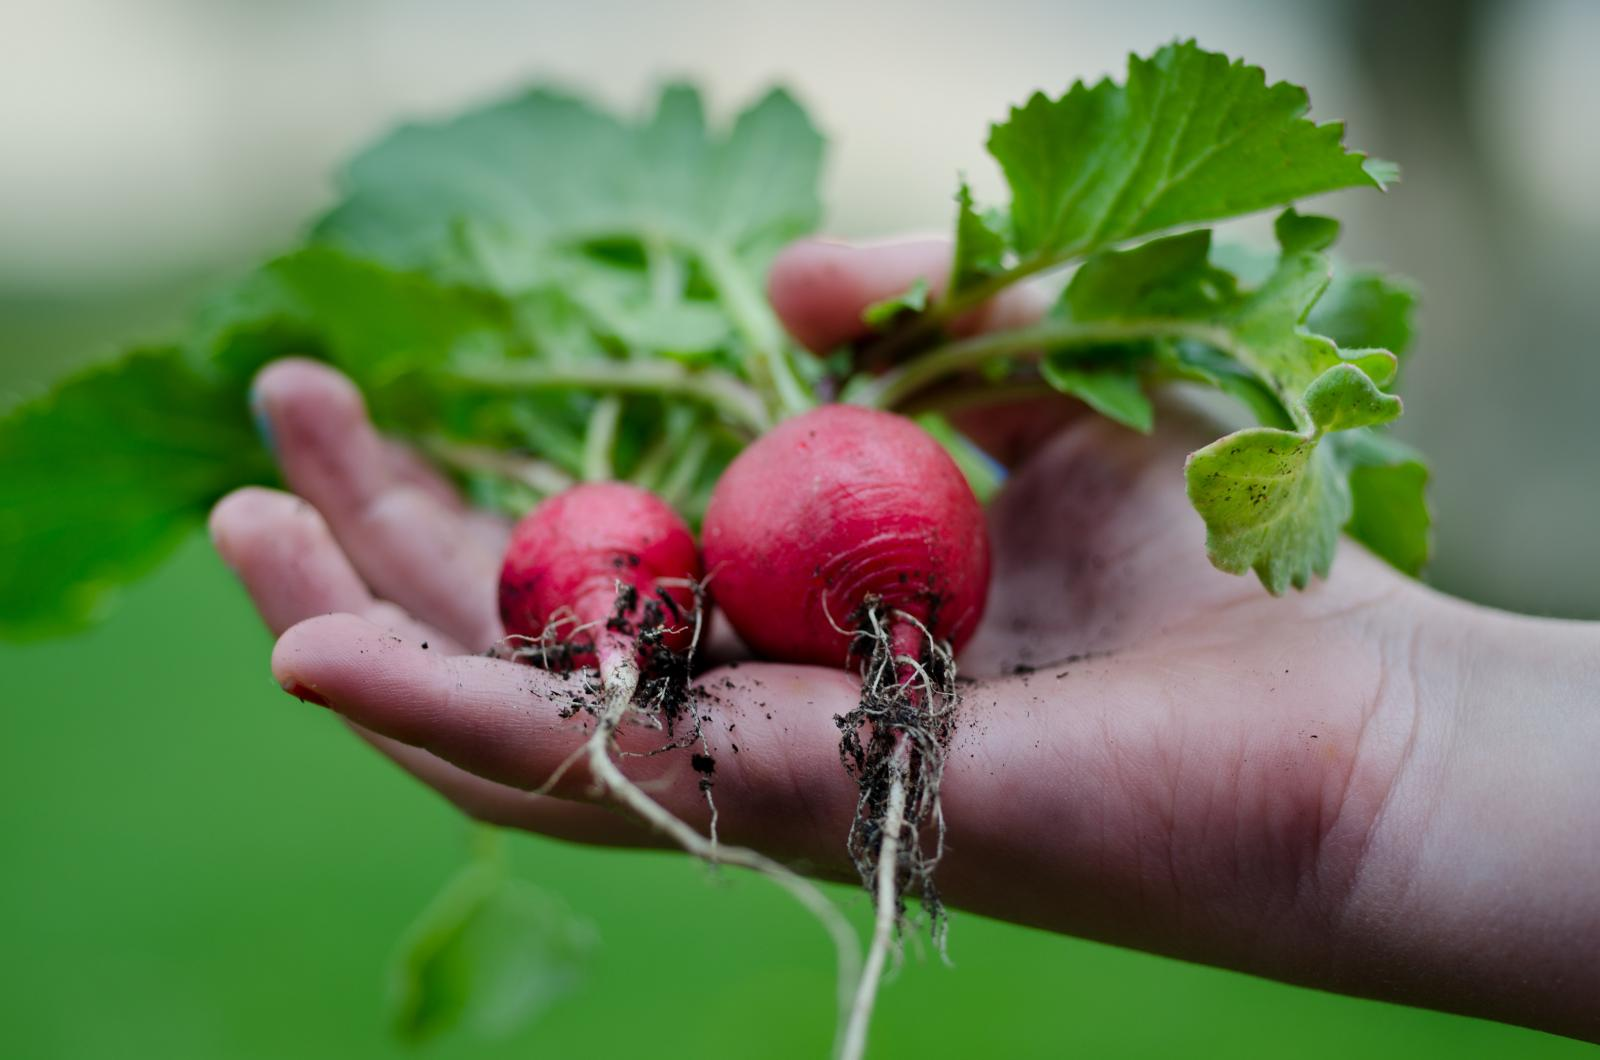 Beetroot harvest. Photo credit: Pexels